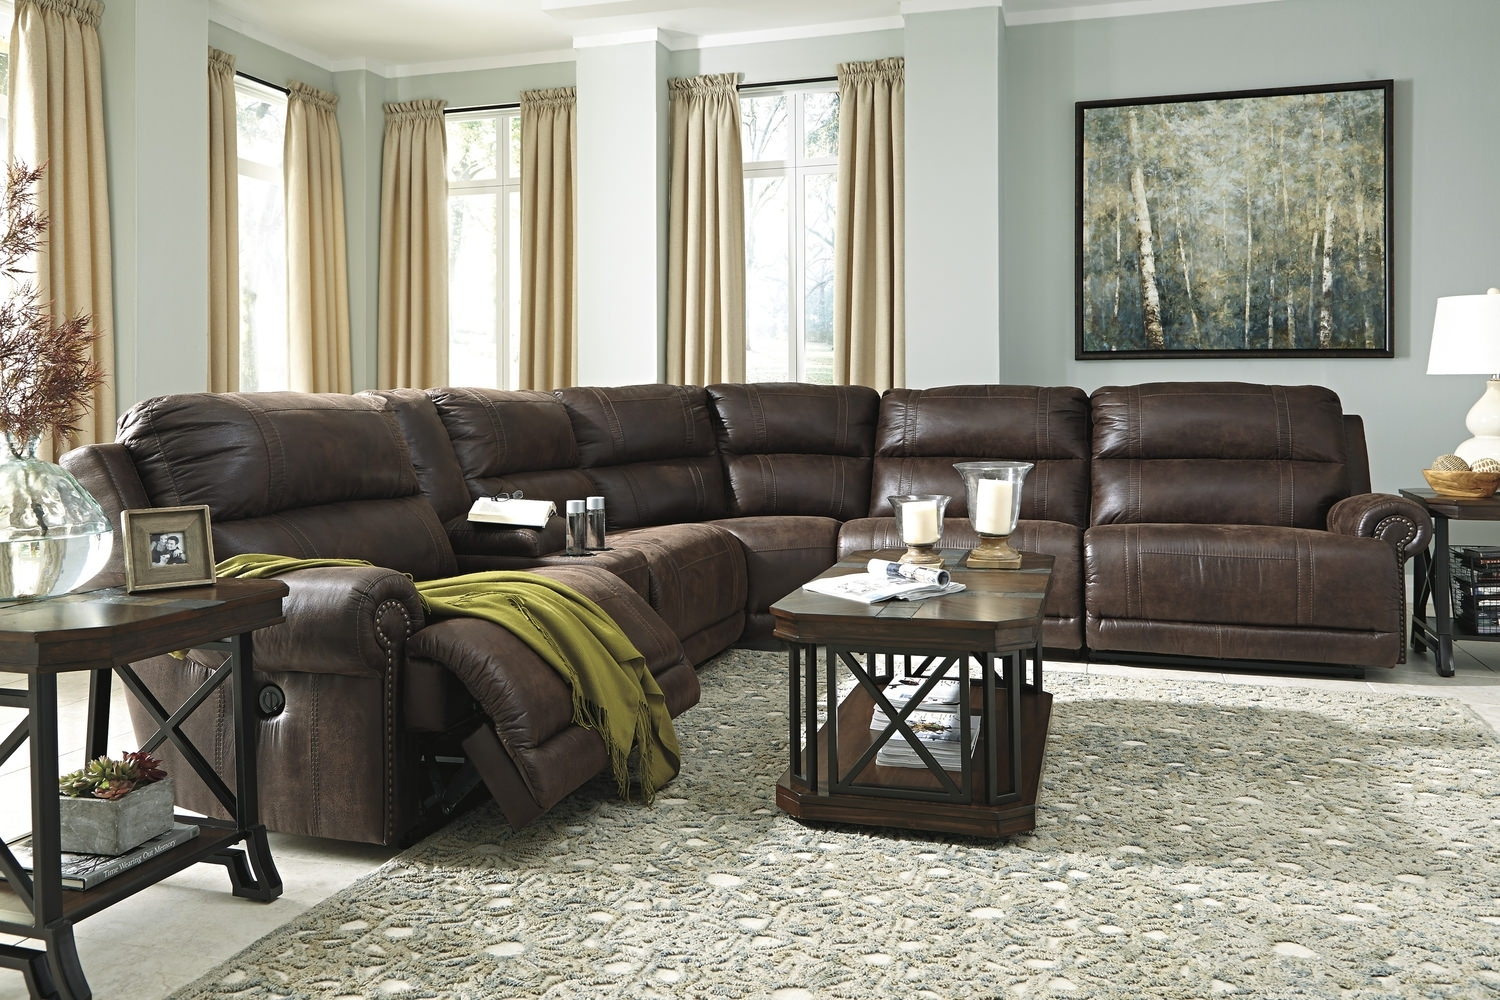 Placer 6 Piece Power Reclining Modular Sectional   Dock86 Intended For Blaine 4 Piece Sectionals (Image 15 of 25)